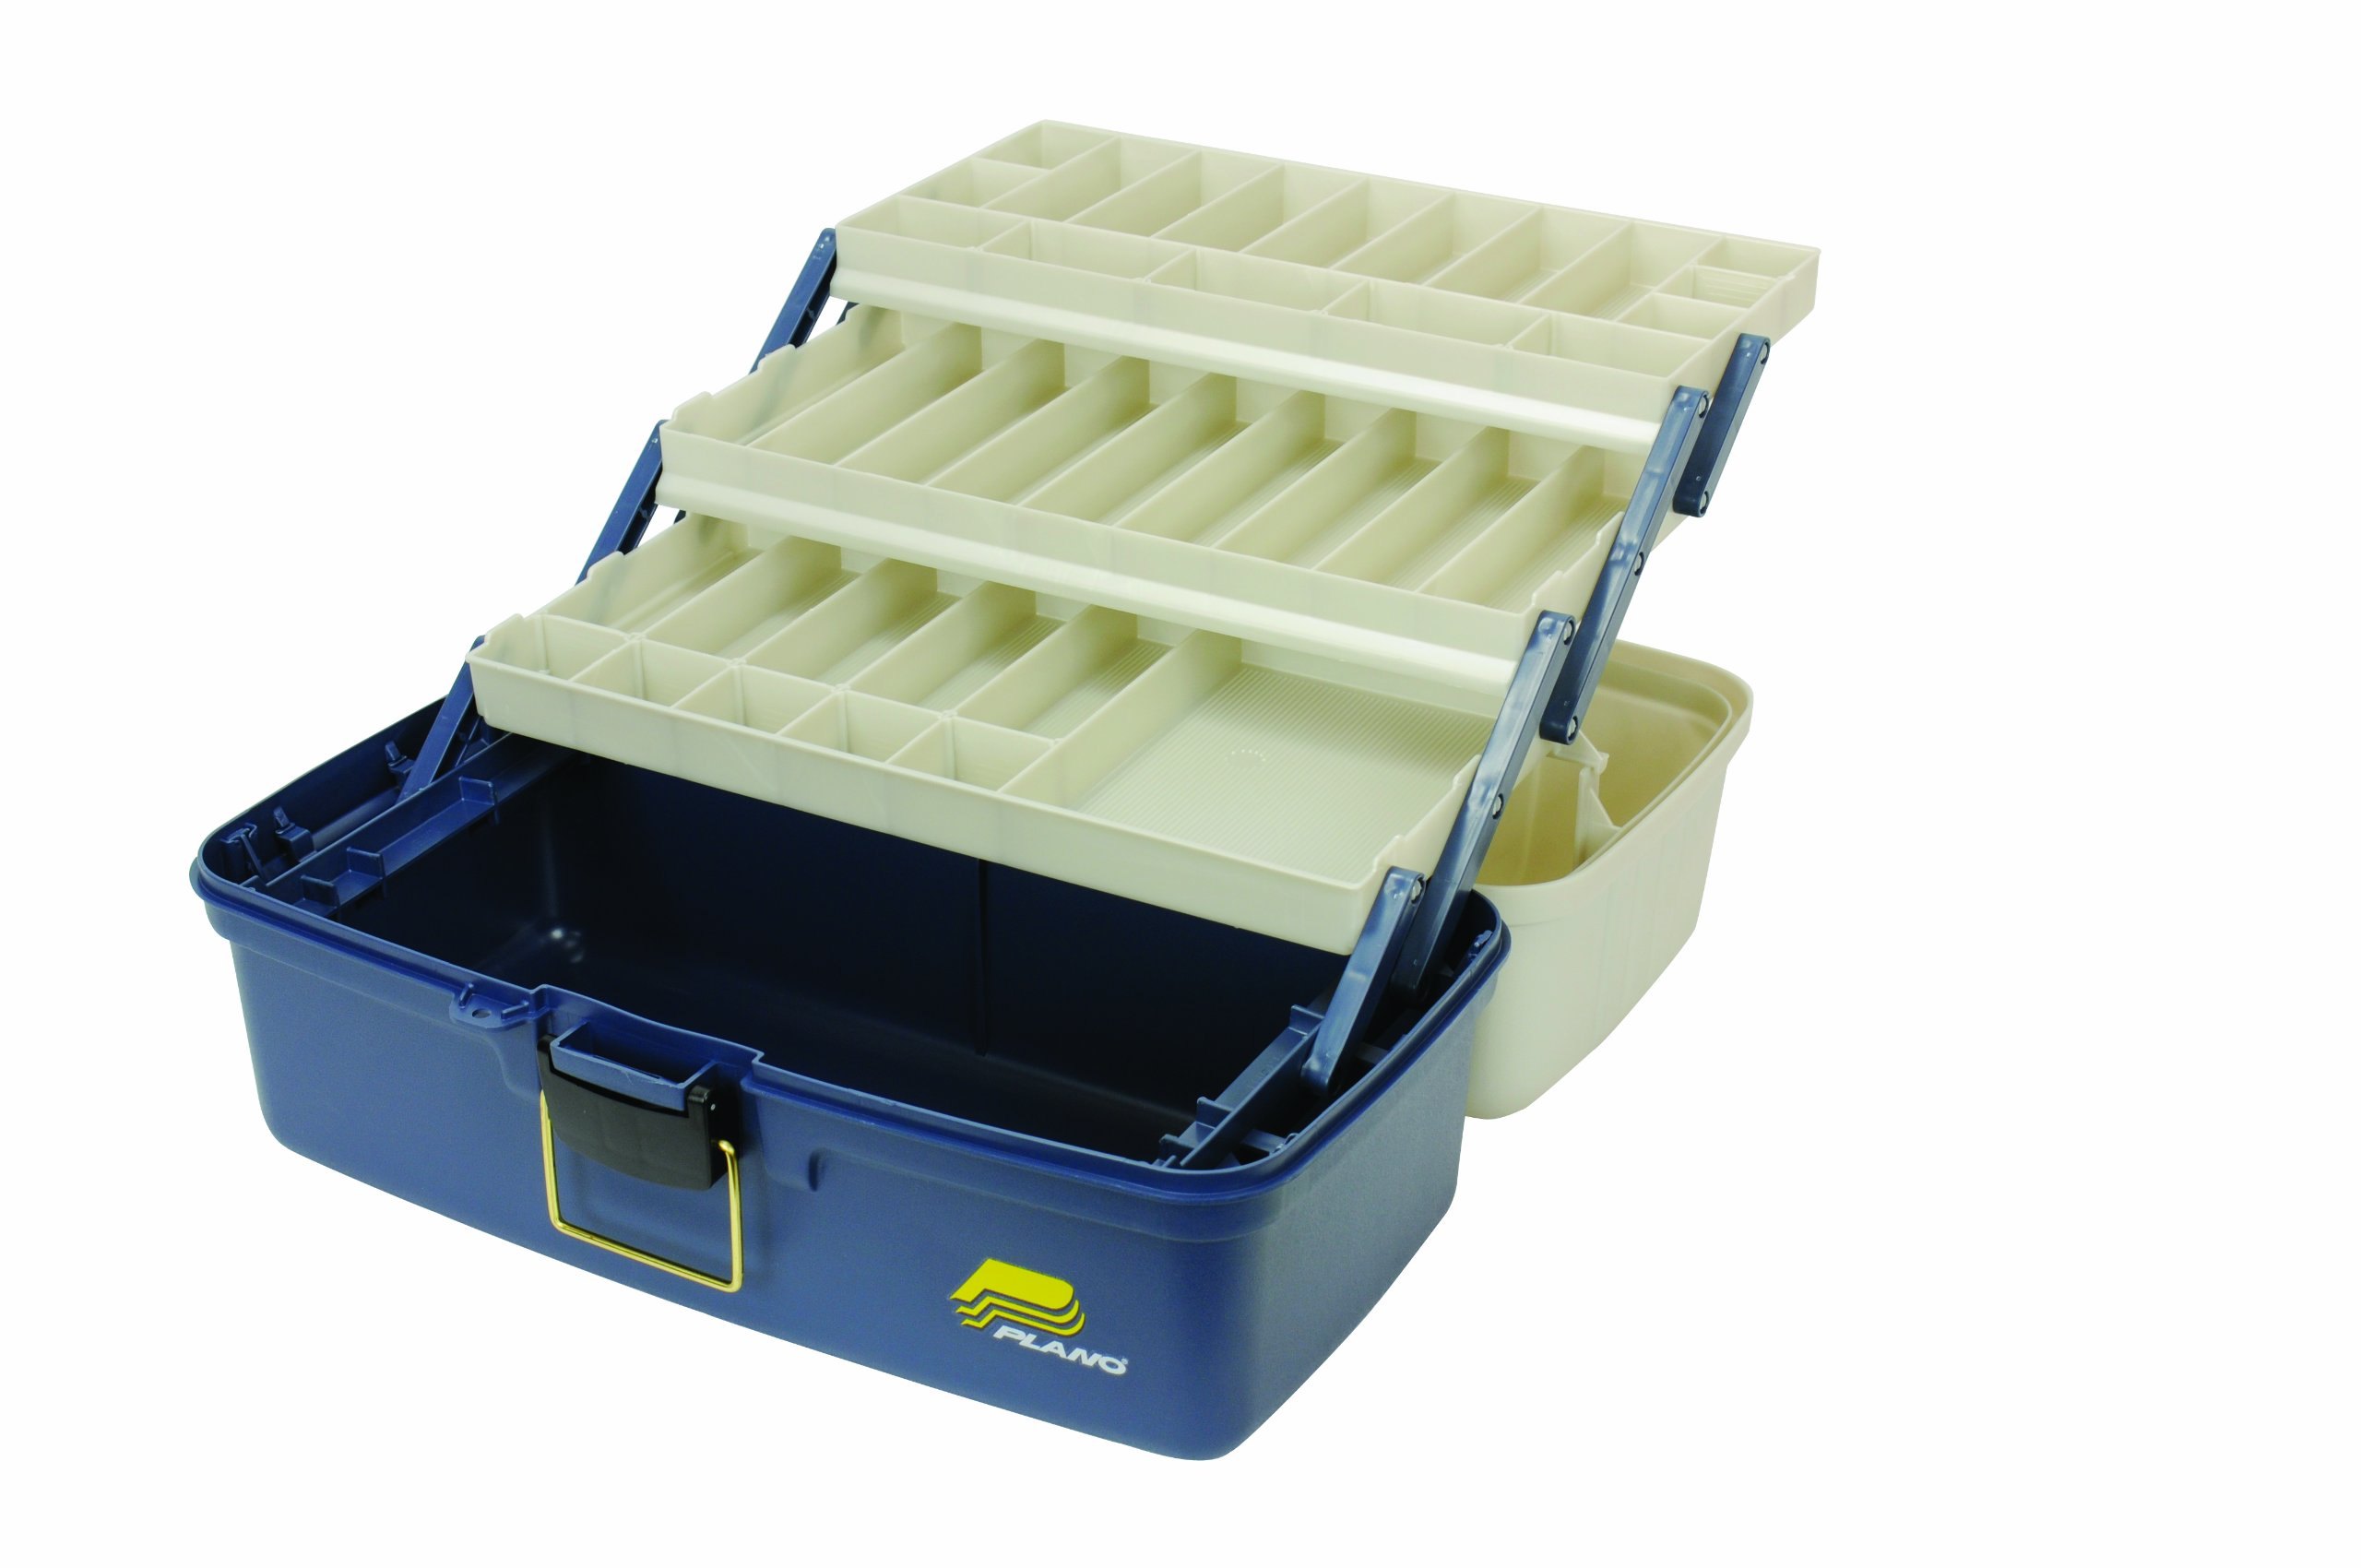 Plano xl 3 tray tackle box with large bulk storage new ebay for Plano fishing tackle boxes